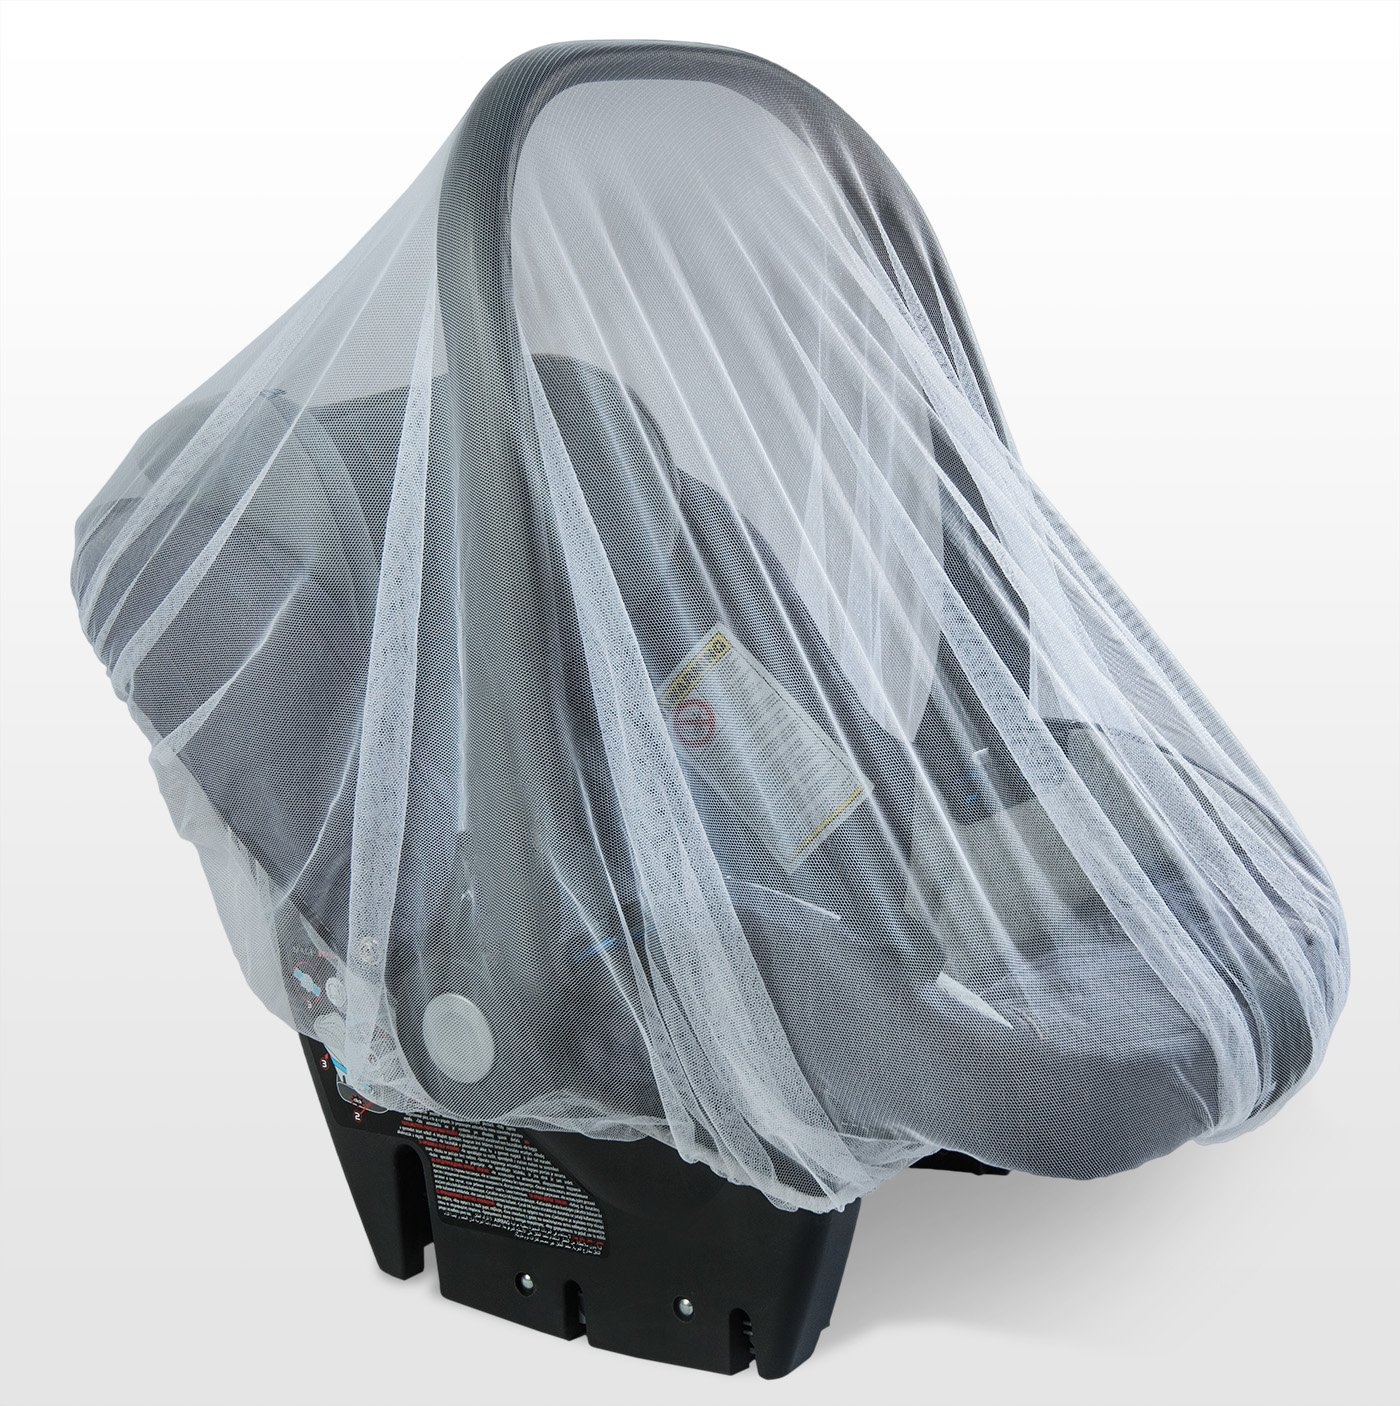 Car Seats 44 x 48 Inch Baby Mosquito Net for Strollers Made of White Cribs Carriers Portable /& Durable Baby Insect Netting Fits Most PacknPlays Cradles Bassinets /& Playpens